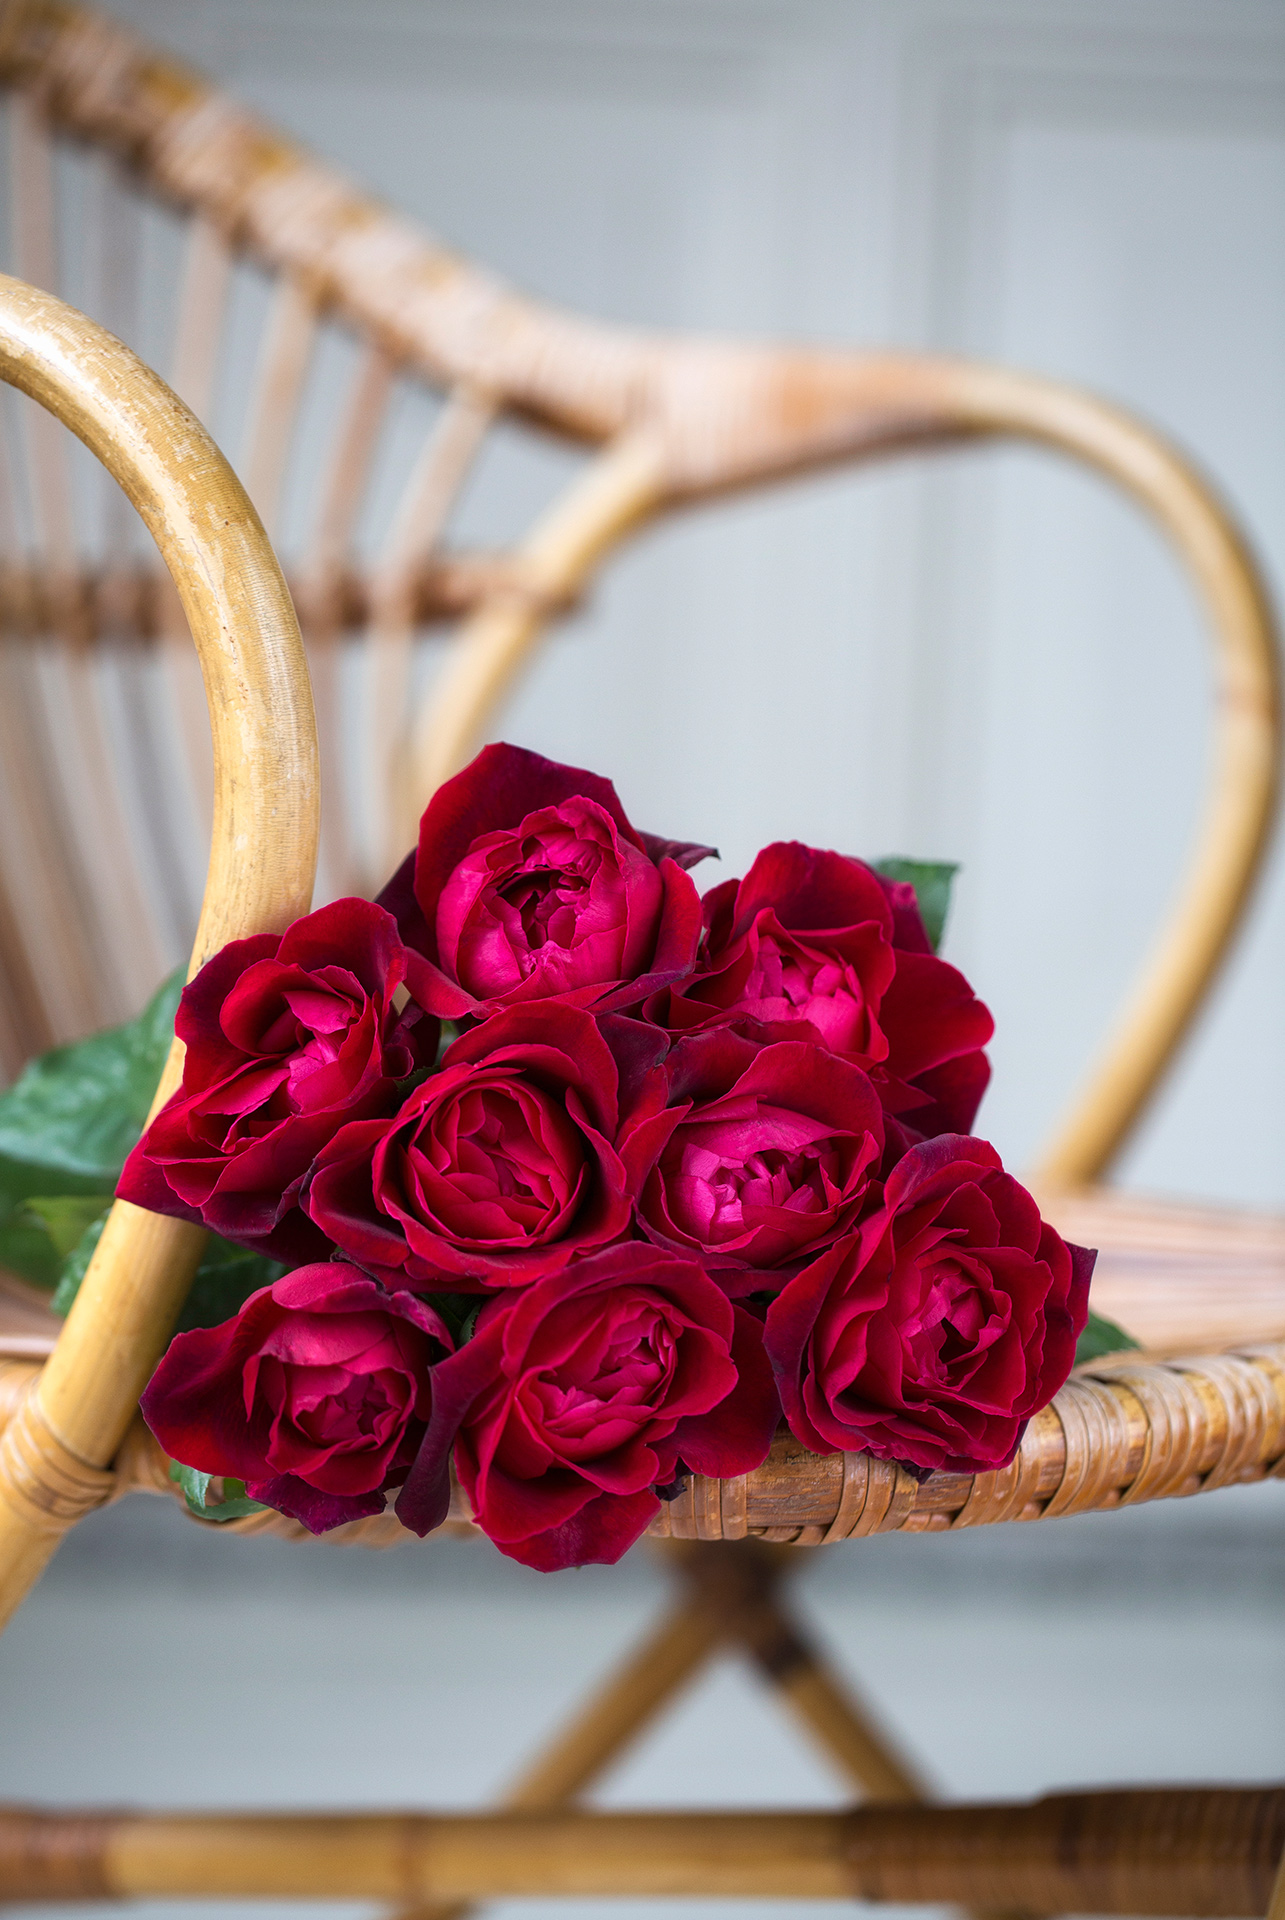 The red rose Extase is a gorgeous rose with a rich and fruity fragrance. Extase opens to a beautiful shaped rosette with a deep red color and develops velvety purple tones as the bloom ages.